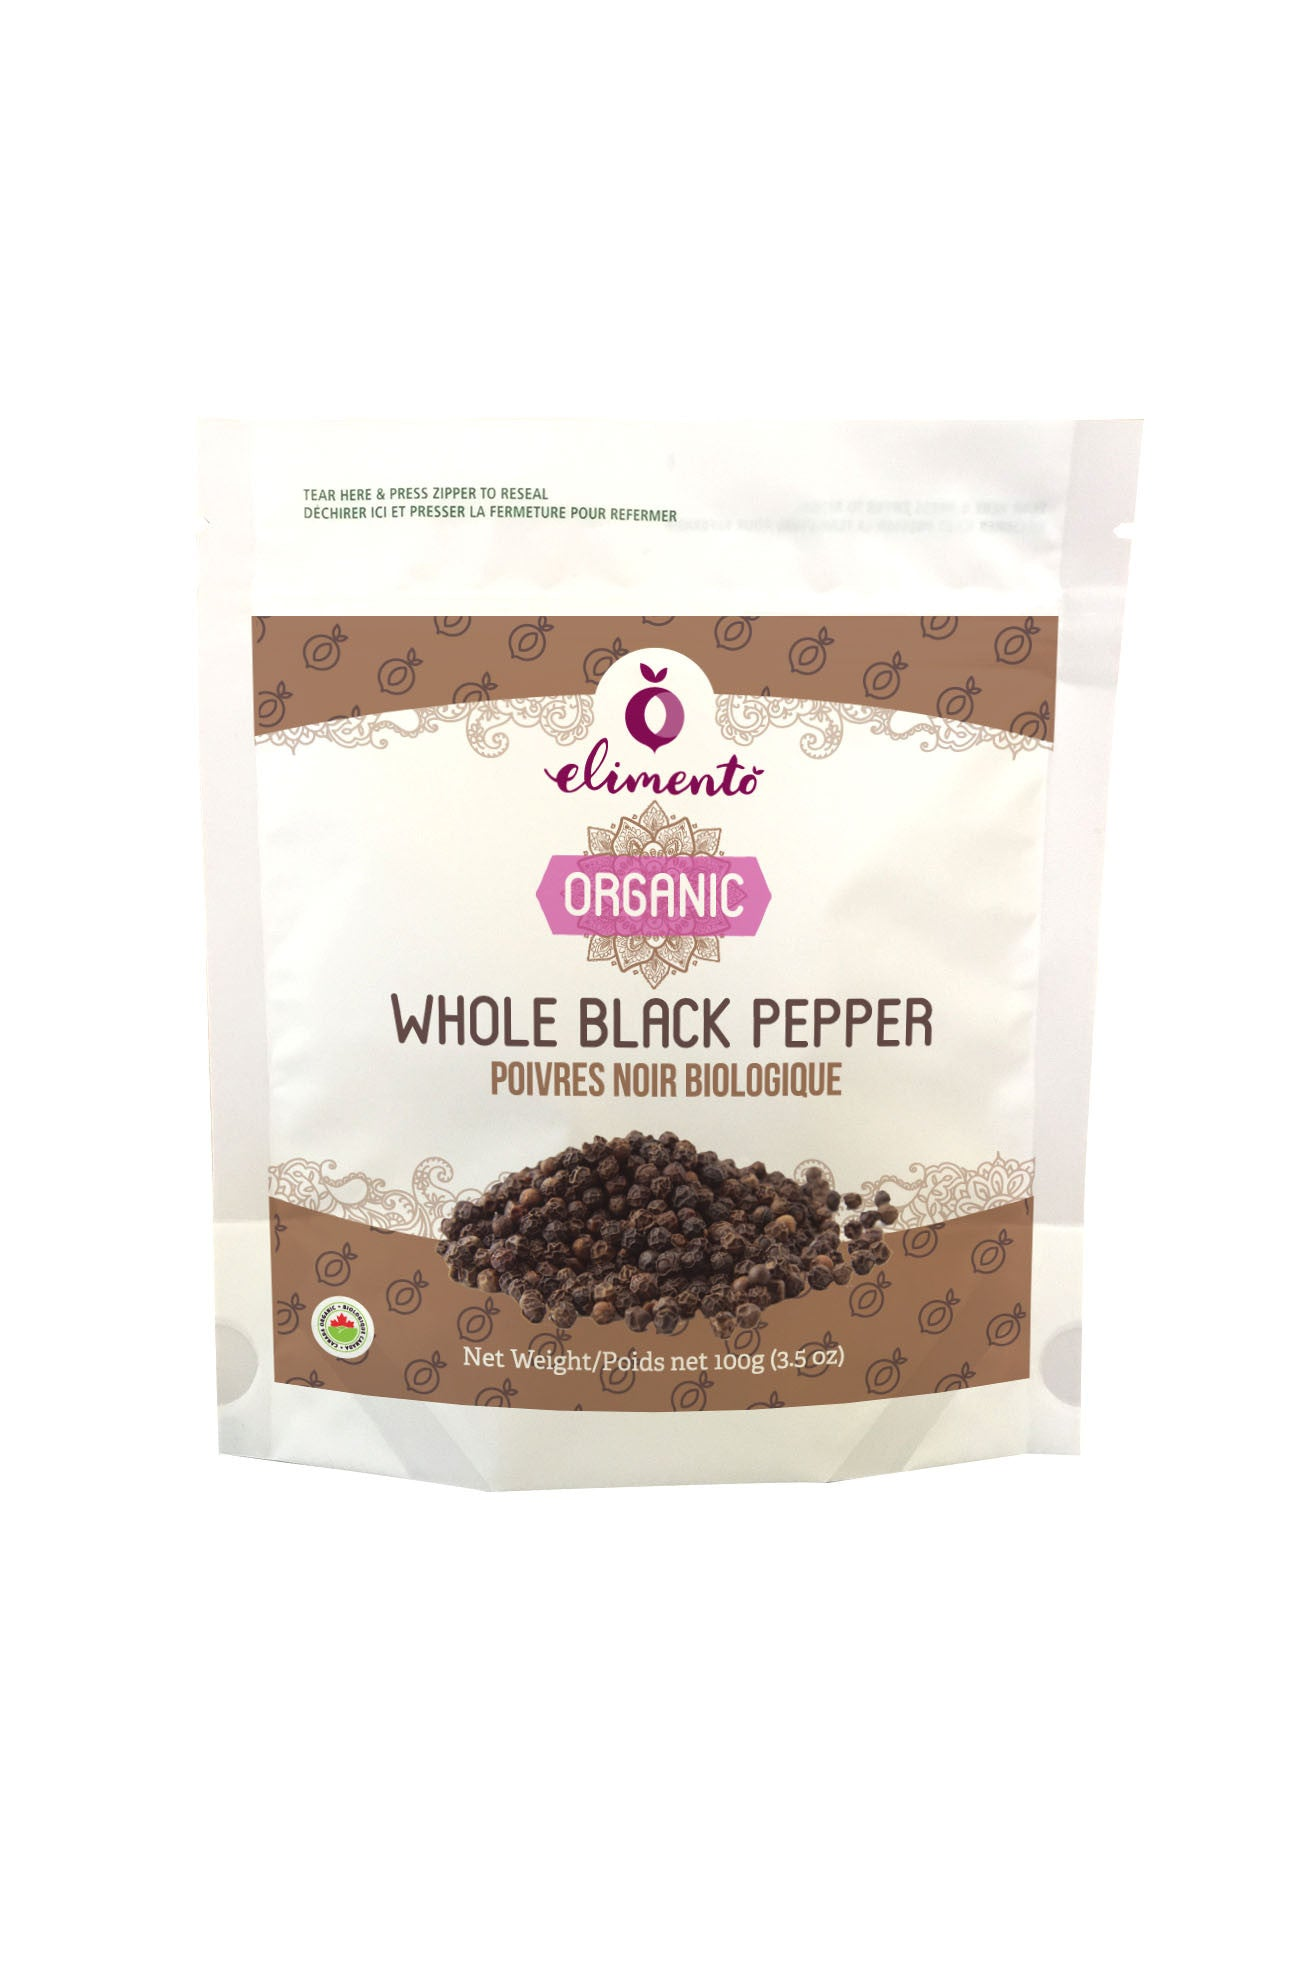 whole-black-pepper-organic-elimento